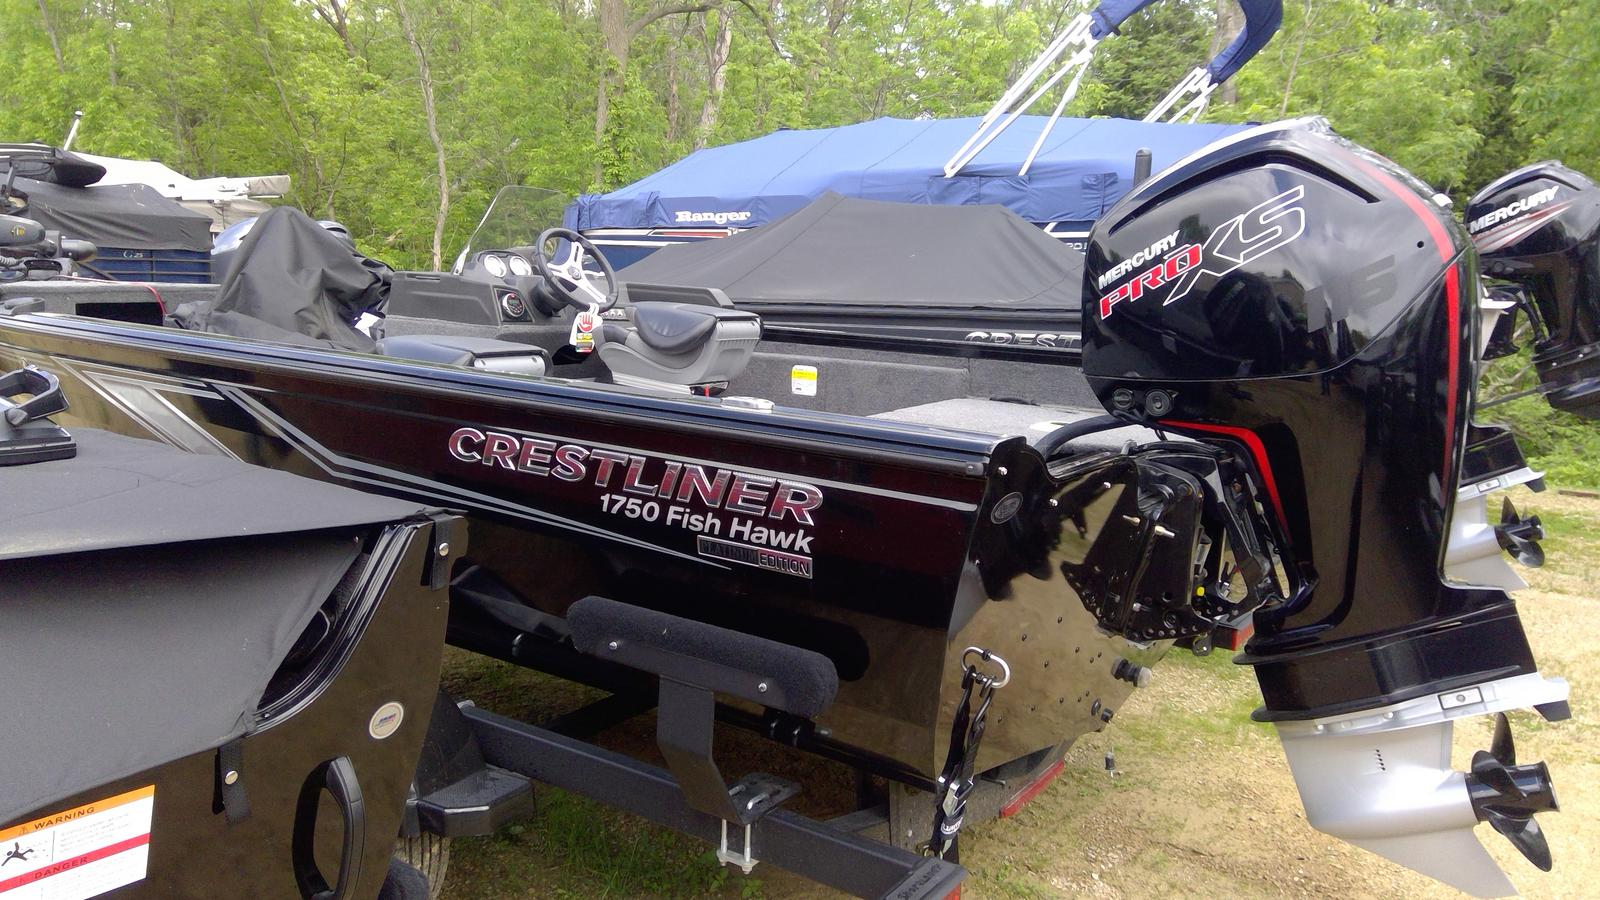 Boats from Crestliner Quam's Marine & Motor Sports Stoughton, WI